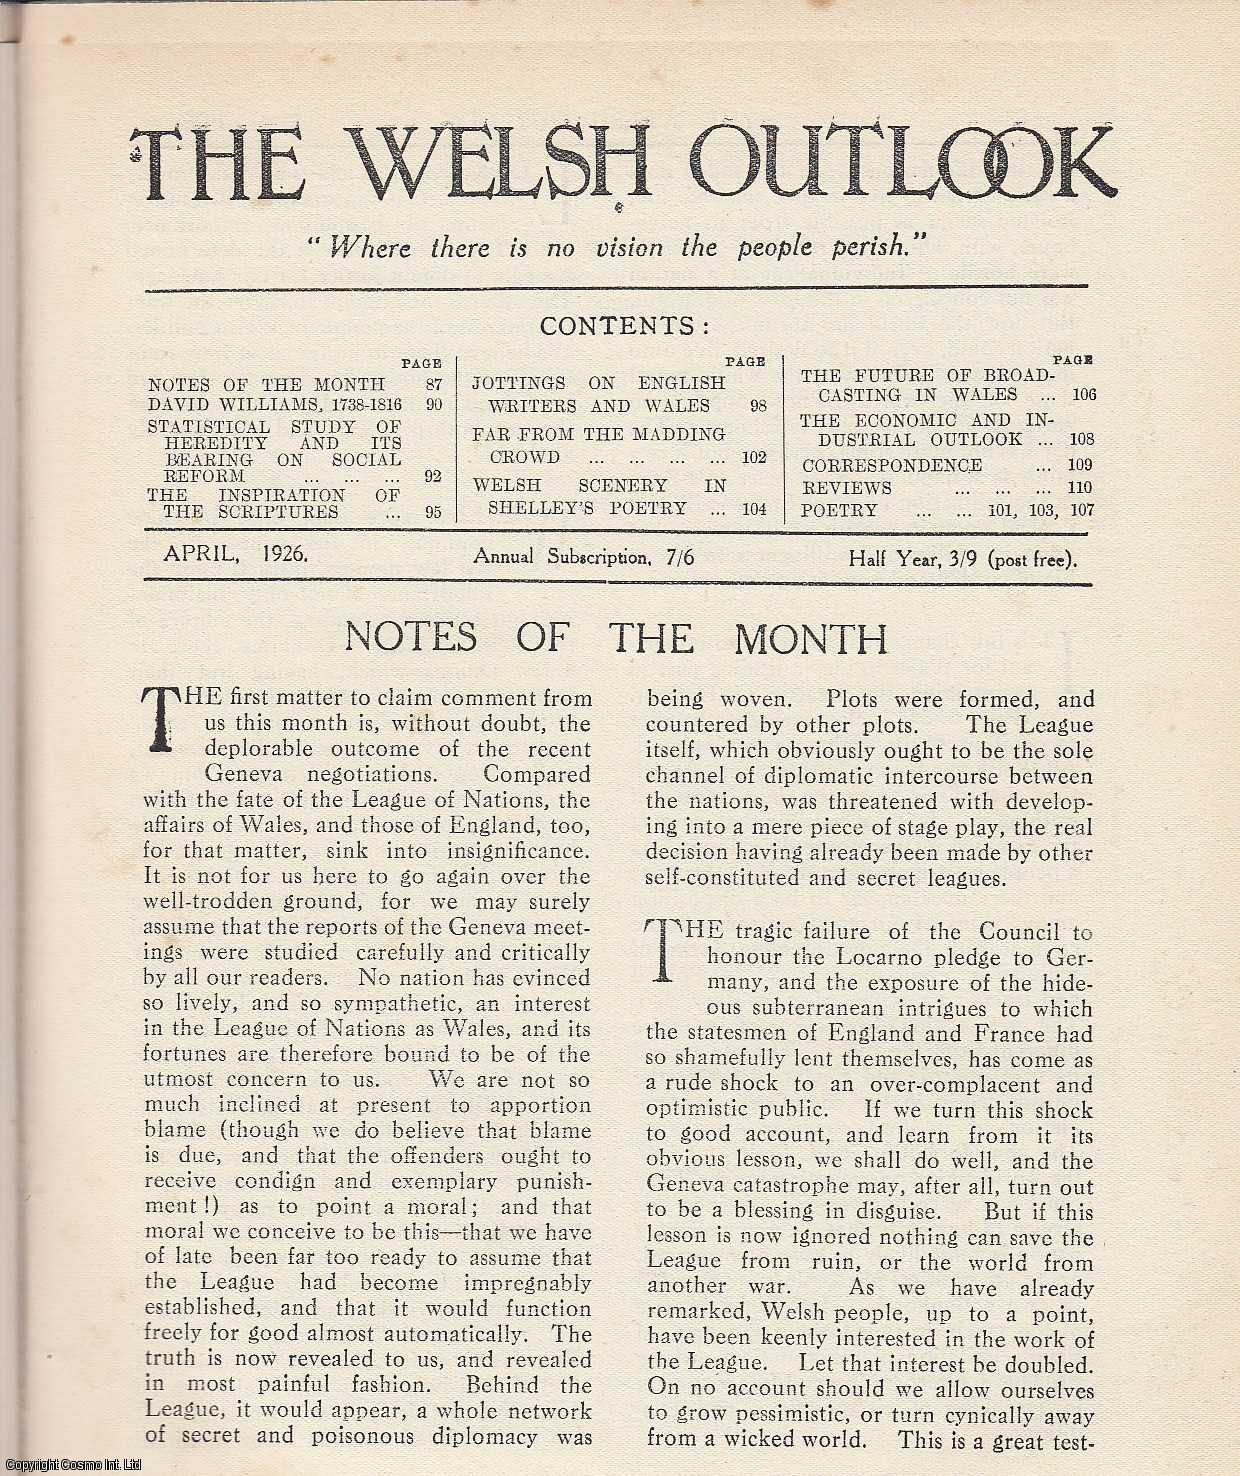 The Welsh Outlook. A Monthly Journal of National Social Progress. April, 1926. Contains; David Williams, 1738-1816 by W. Philip Williams; The Statistical Study of Heredity and its Bearing on Social Reform by D. Caradog Jones; The Inspiration of The Scriptures by Dr. Cynddylan Jones; Jottings on English Writers and Wales - Henry Cary by Prof. H. Wright; Far from The Madding Crowd: An Unknown Country in Wales by R.E. Davies; Welsh Scenery in Shelley's Poetry by Rev. Z. Mather; The Future of Broadcasting in Wales by J.W. Powell; The Economic & Industrial Outlook by W. Tudor Davies., Thomas Jones (Editor)